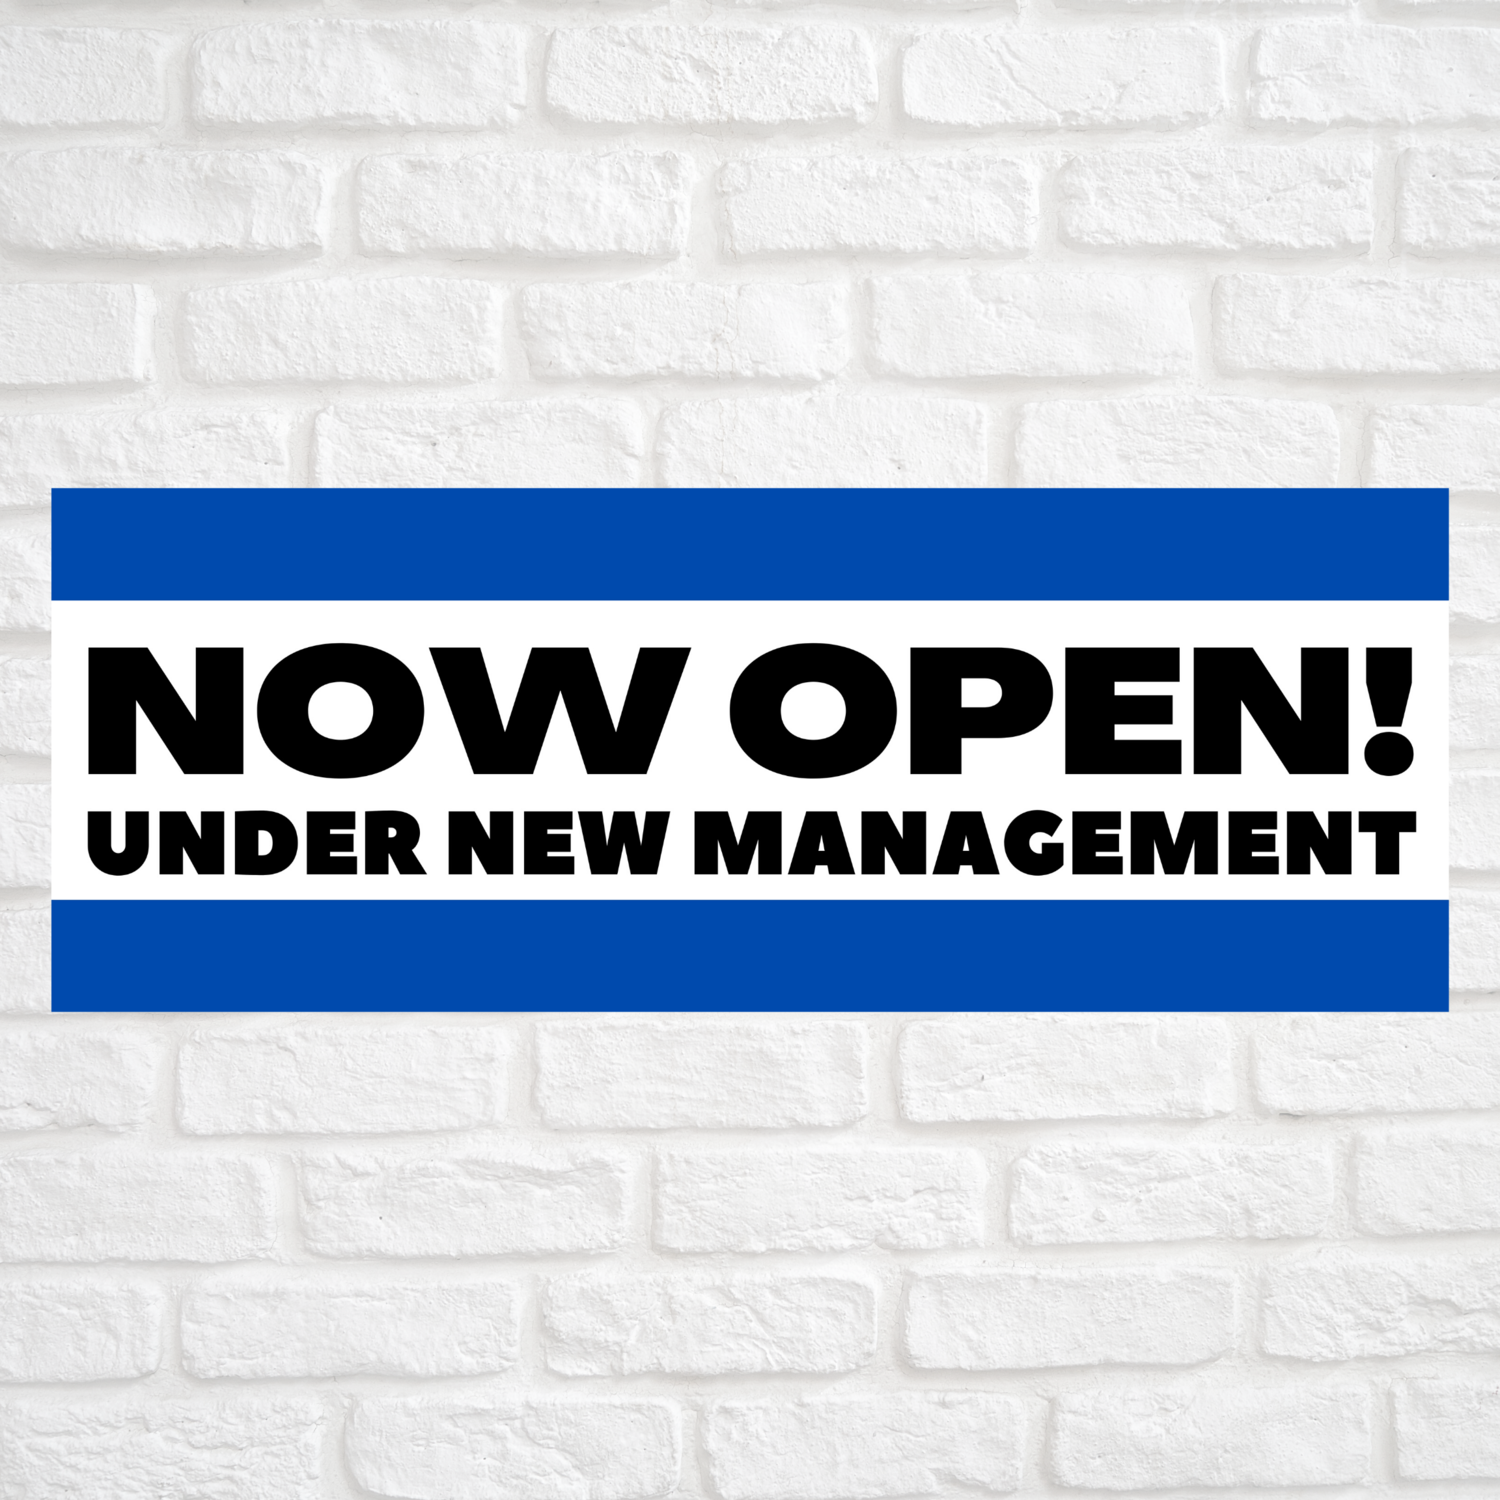 Now Open! Under New Management Blue/Blue